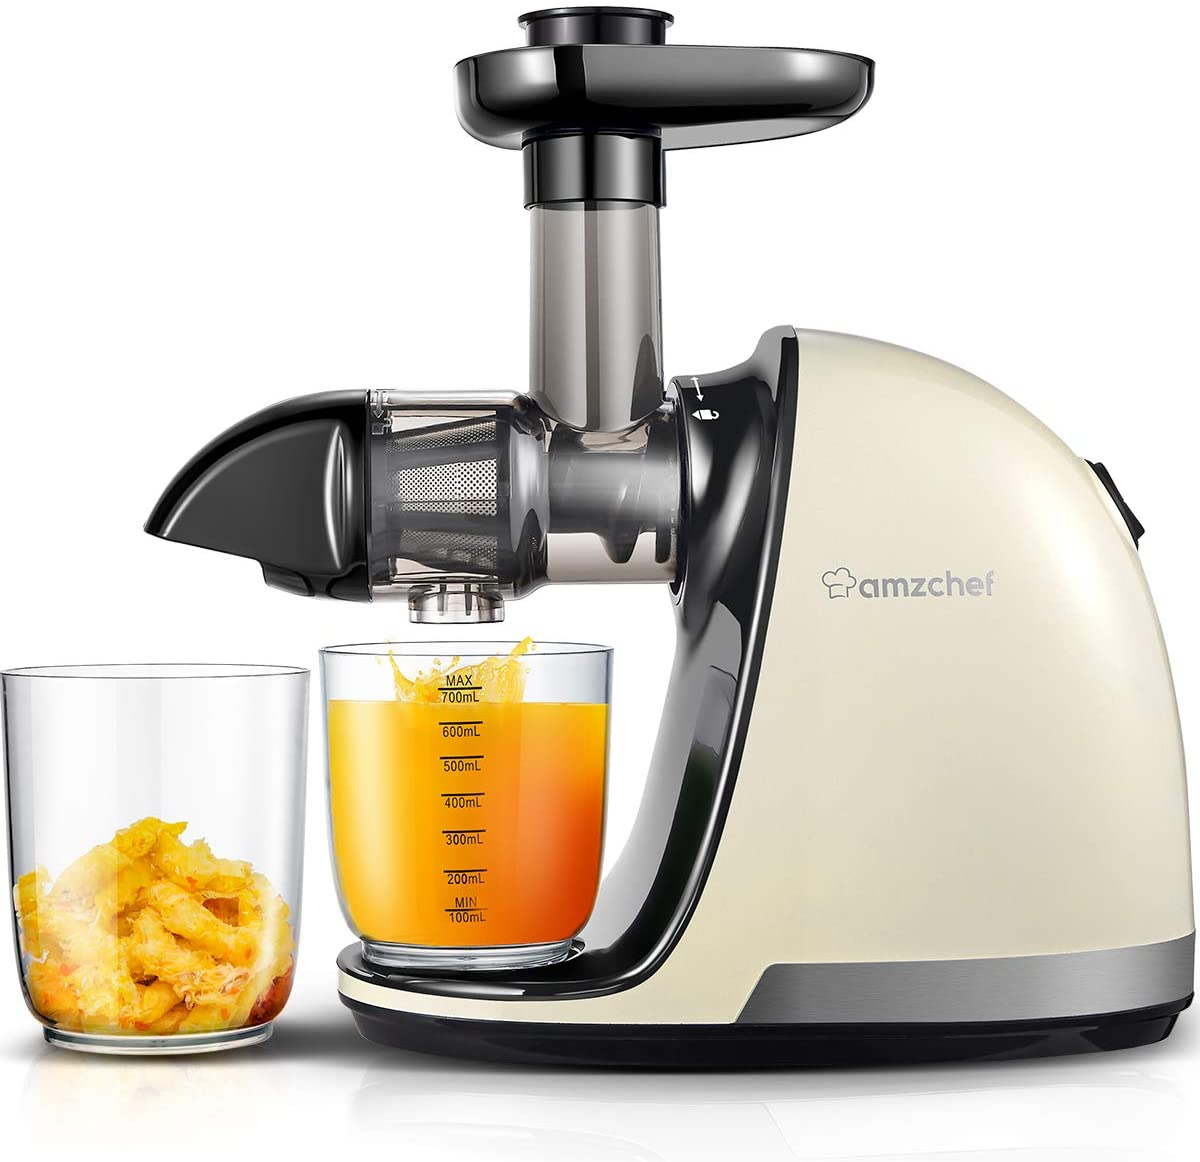 A white and silver slow juicer depositing orange juice on a clear glass cup and orange pulp on another